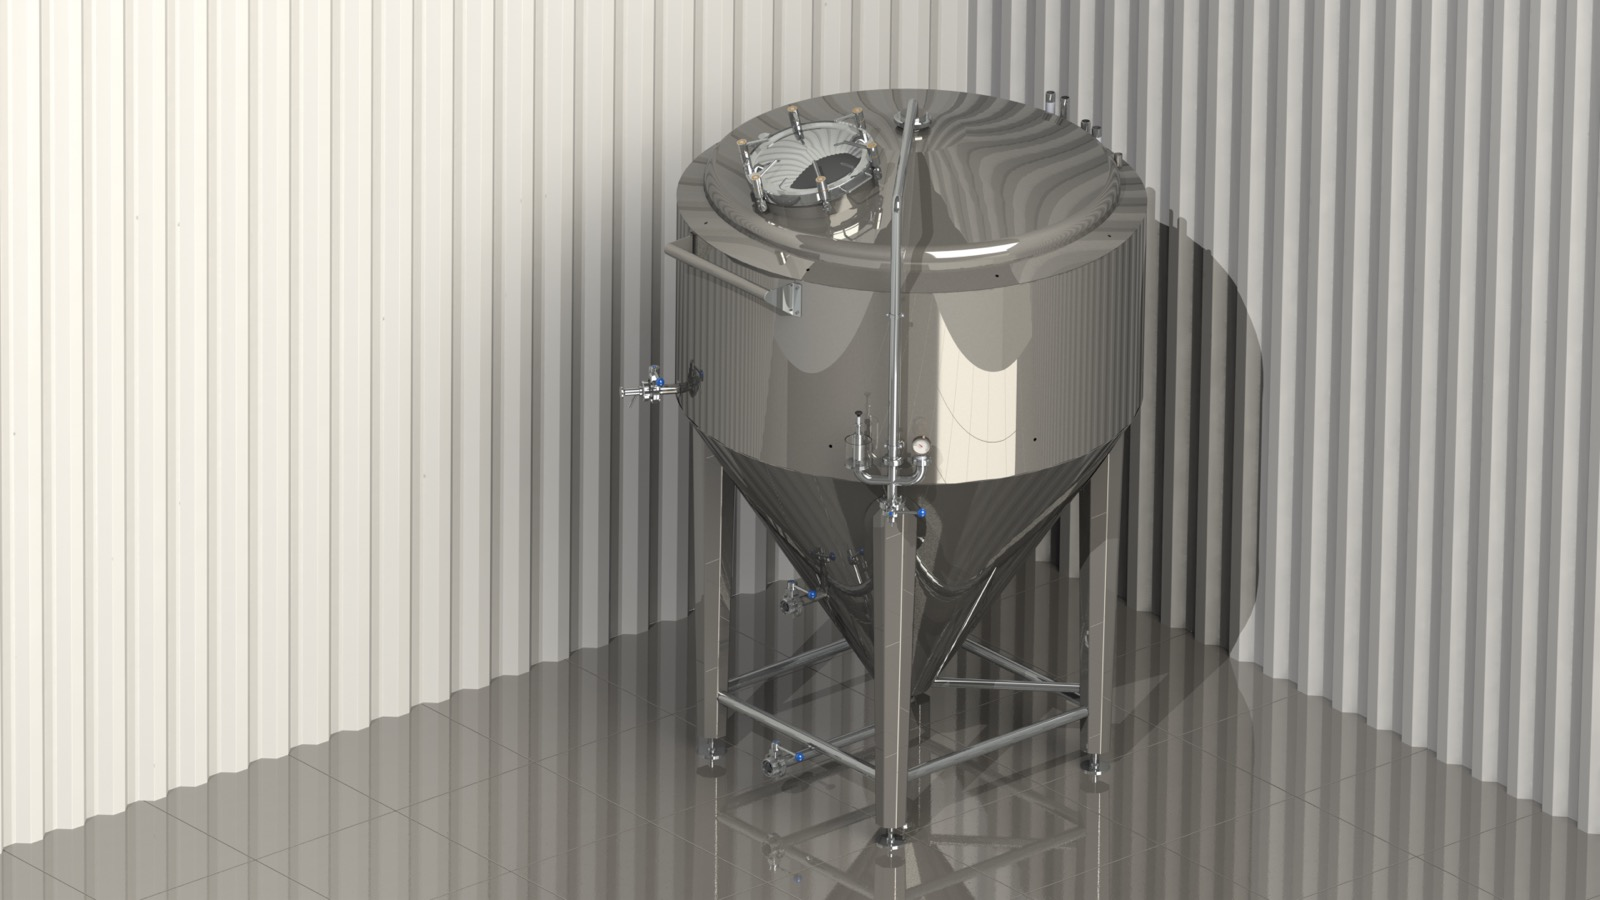 Low cylinder-conical tank at 4000l. with side hatch